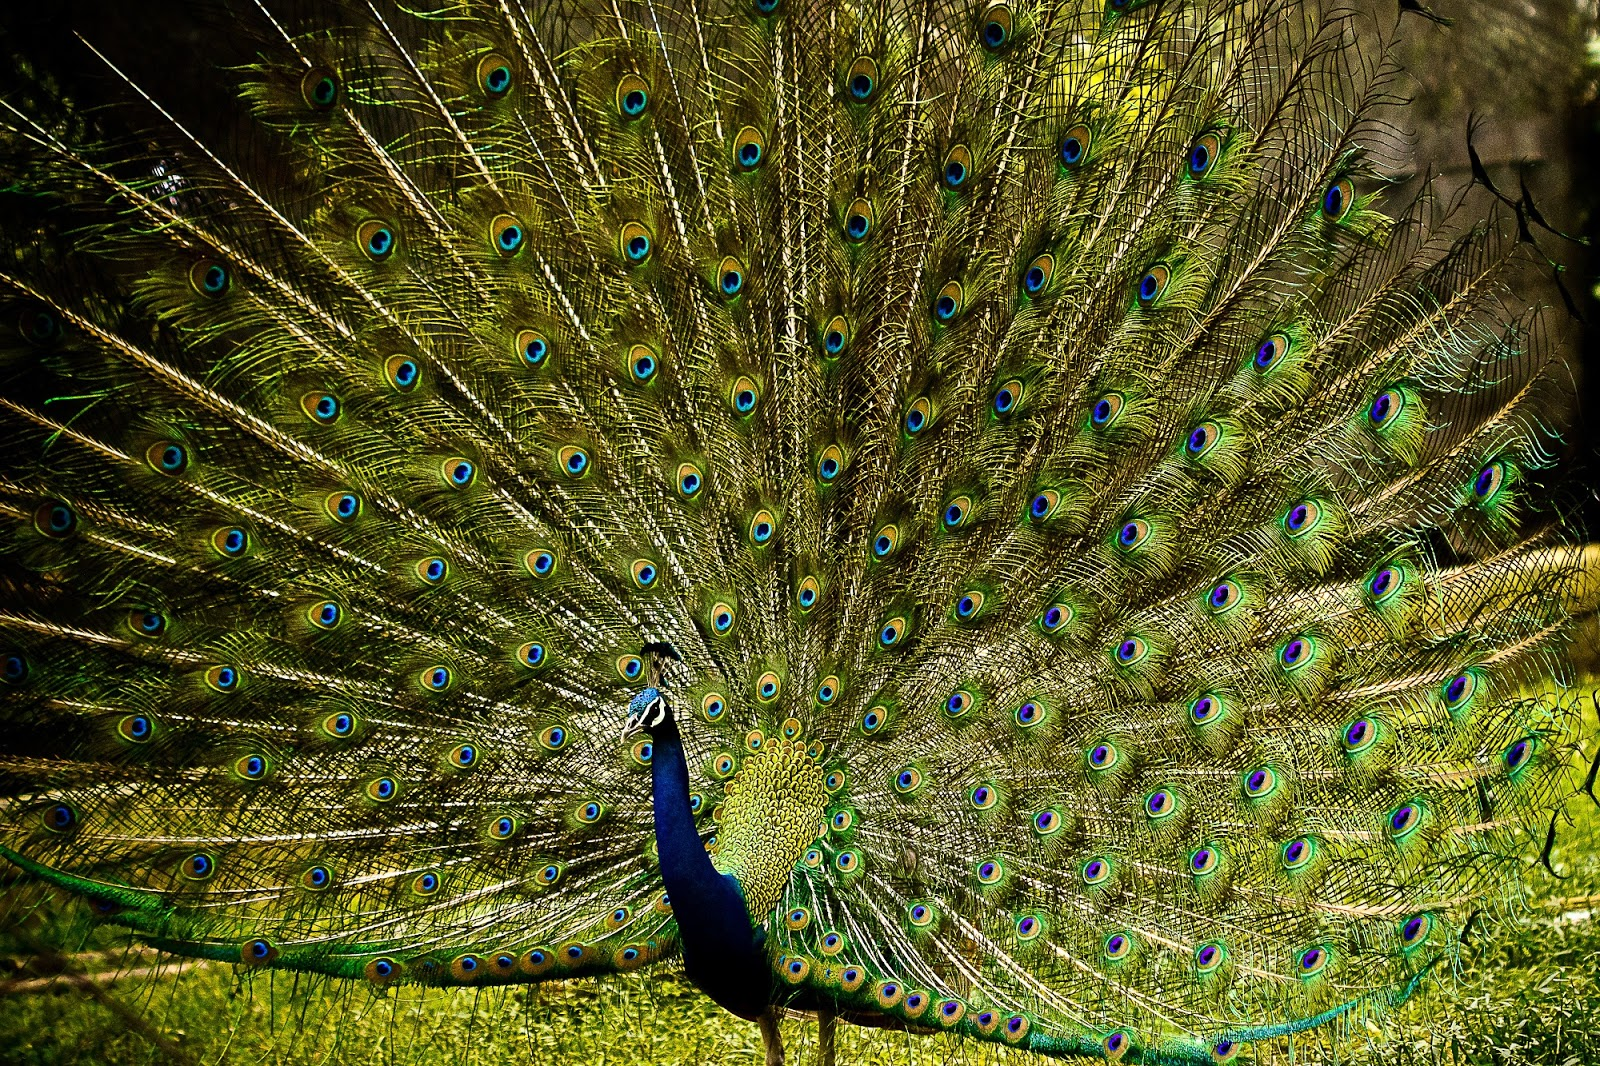 A picture of a peacock spreading it's feathers.